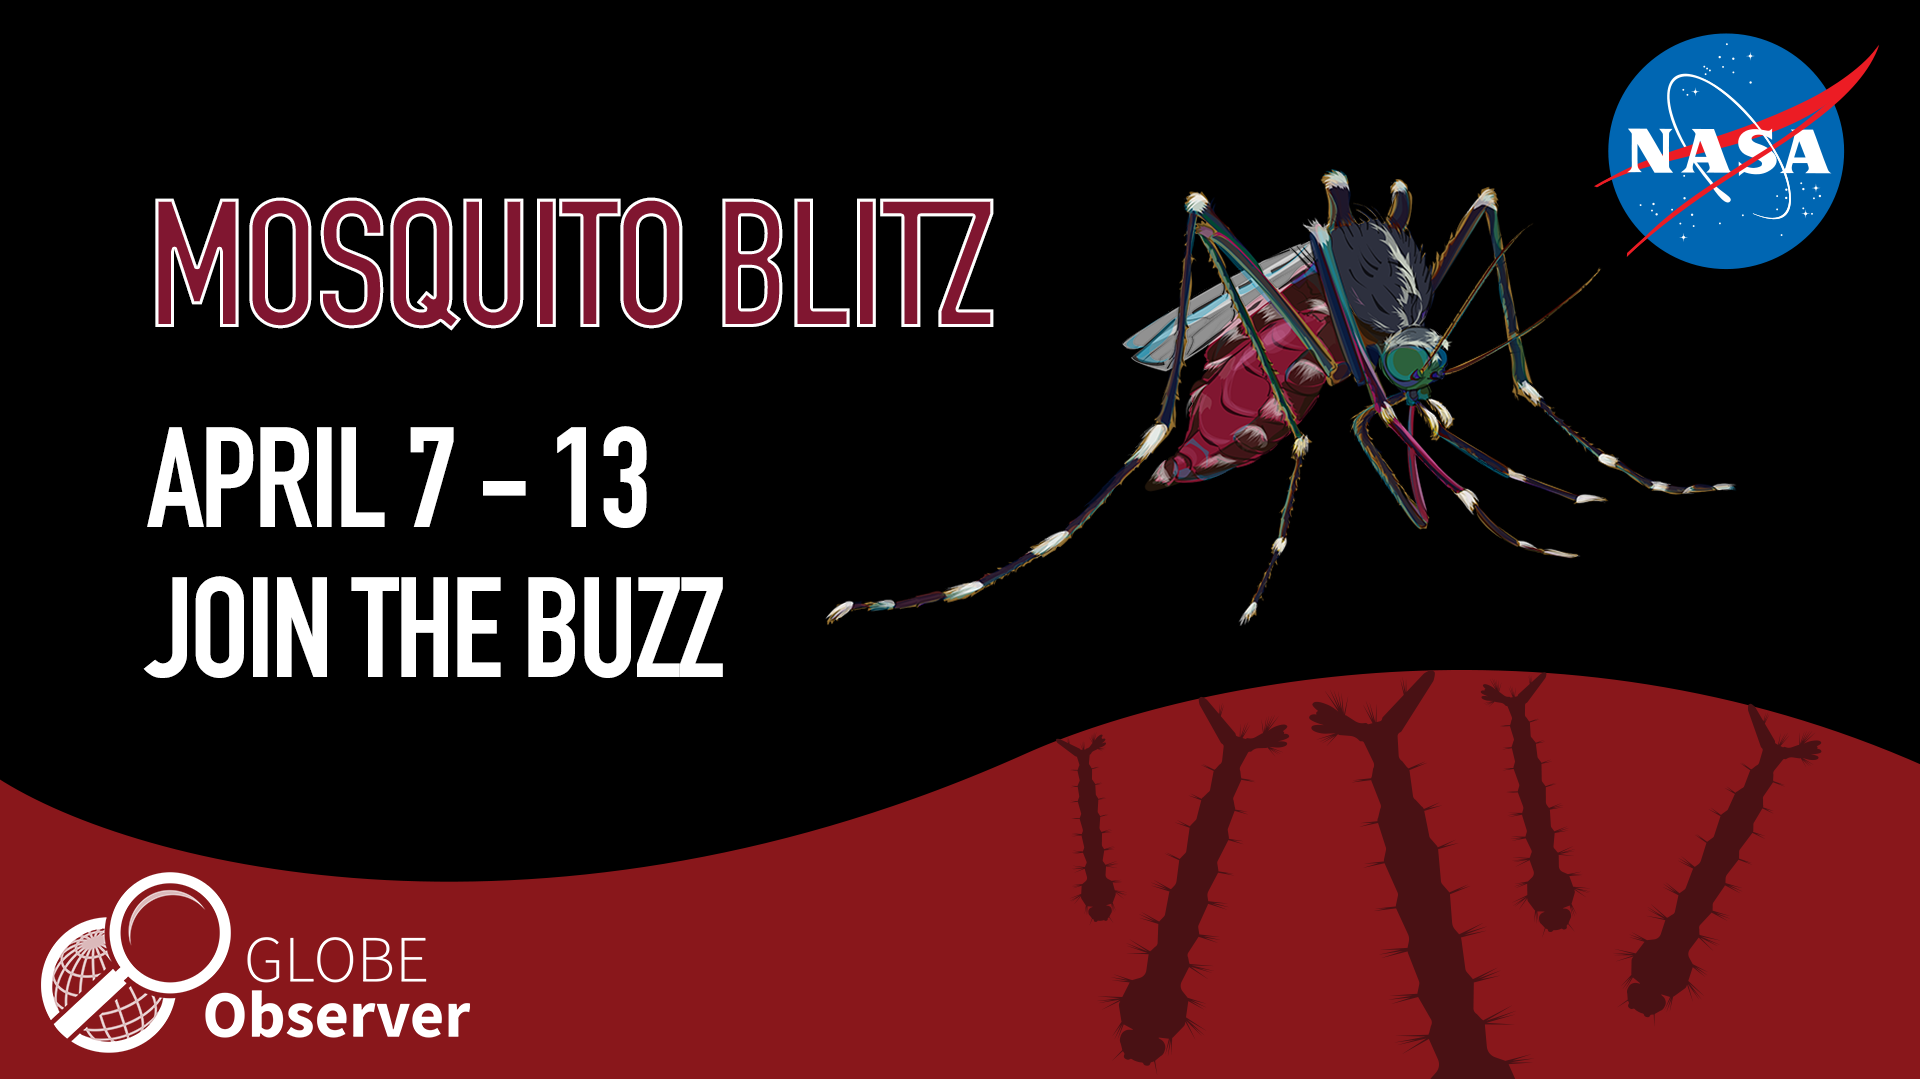 Mosquito Blitz shareable